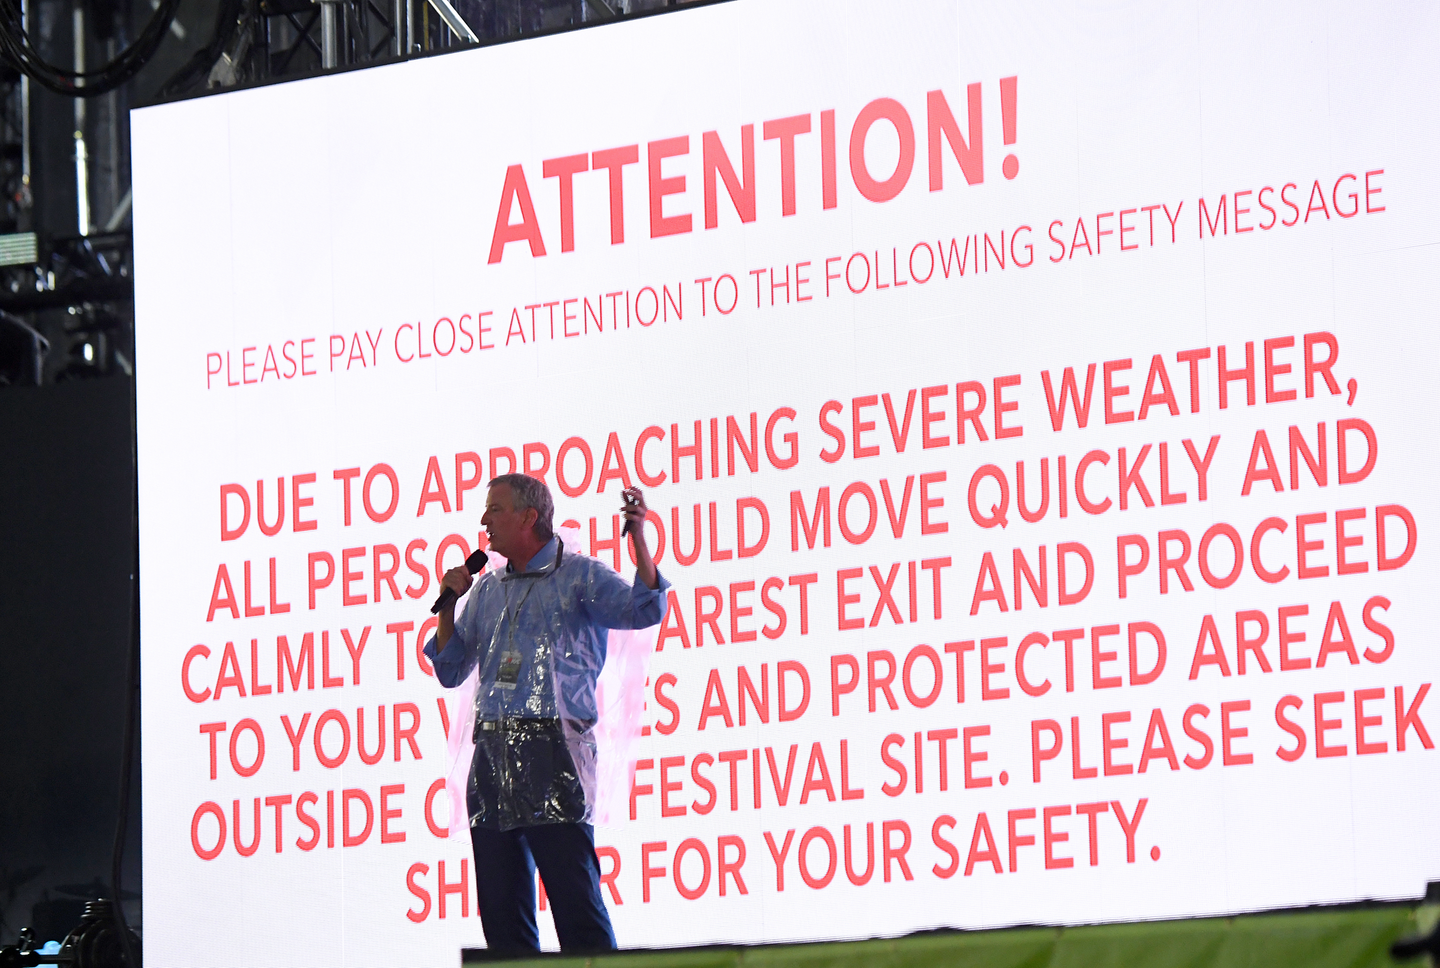 New York City Mayor Bill de Blasio made an announcement onstage, asking the concertgoers to take shelter from the storm.